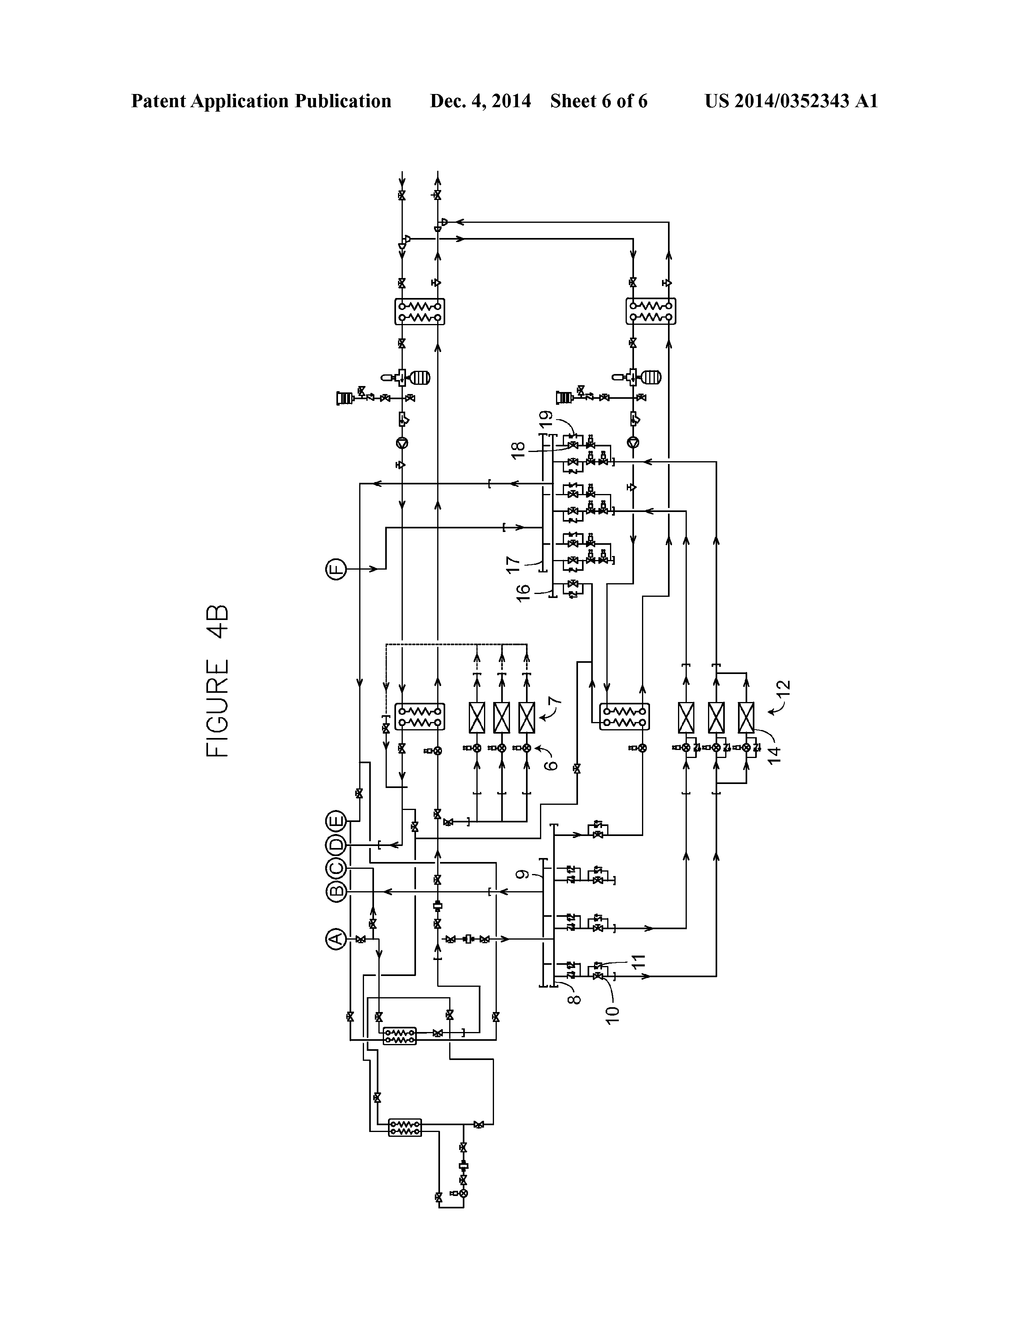 CO2 REFRIGERATION SYSTEM WITH HOT GAS DEFROST - diagram ... on refrigeration flow diagram, refrigeration wiring schematics, refrigeration system schematic, refrigeration piping diagram, refrigeration schematic symbols, basic refrigeration cooler diagram, refrigeration block diagram, refrigeration wiring diagram, refrigeration cycle diagram, refrigeration system diagram, simple refrigeration diagram, refrigeration flow chart, refrigerator diagram, refrigeration component diagram, basic refrigeration circuit diagram, refrigeration line diagram,